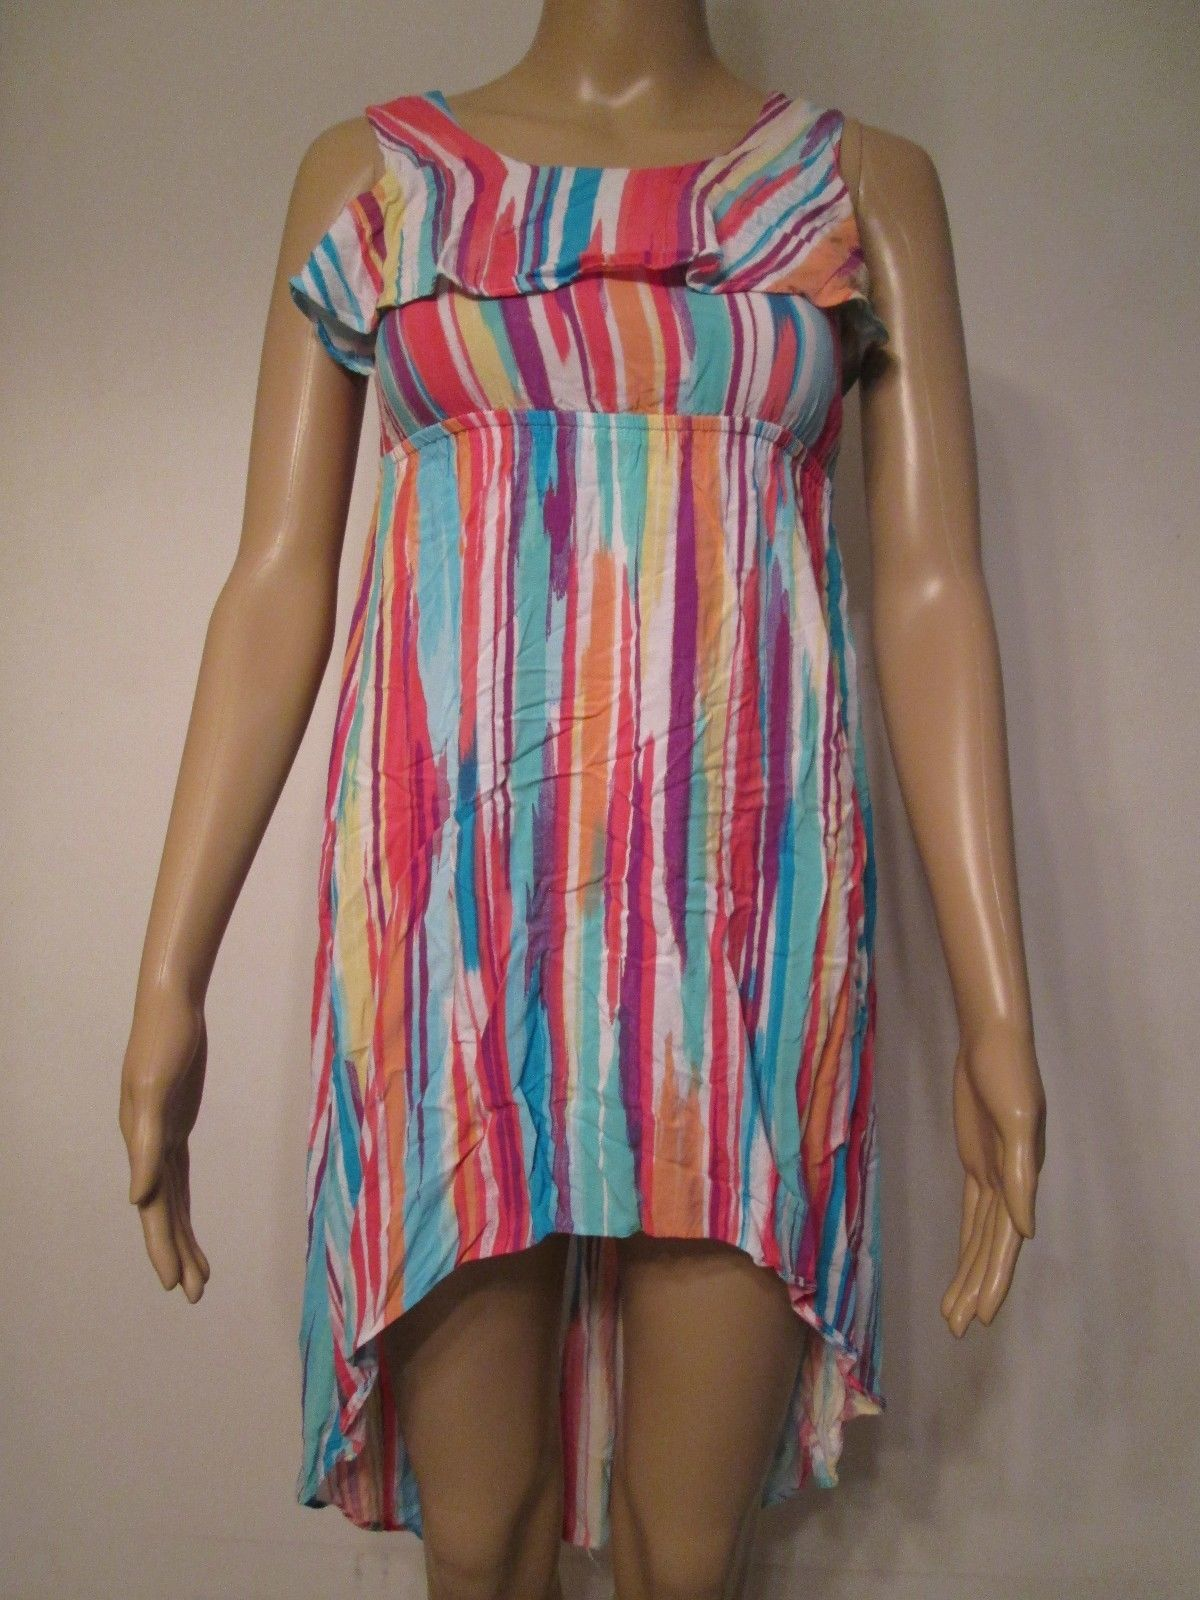 Primary image for PLACE Girl's Dress Size Large 10/12 Multi Color Sleeveless Cute!!!! #B1